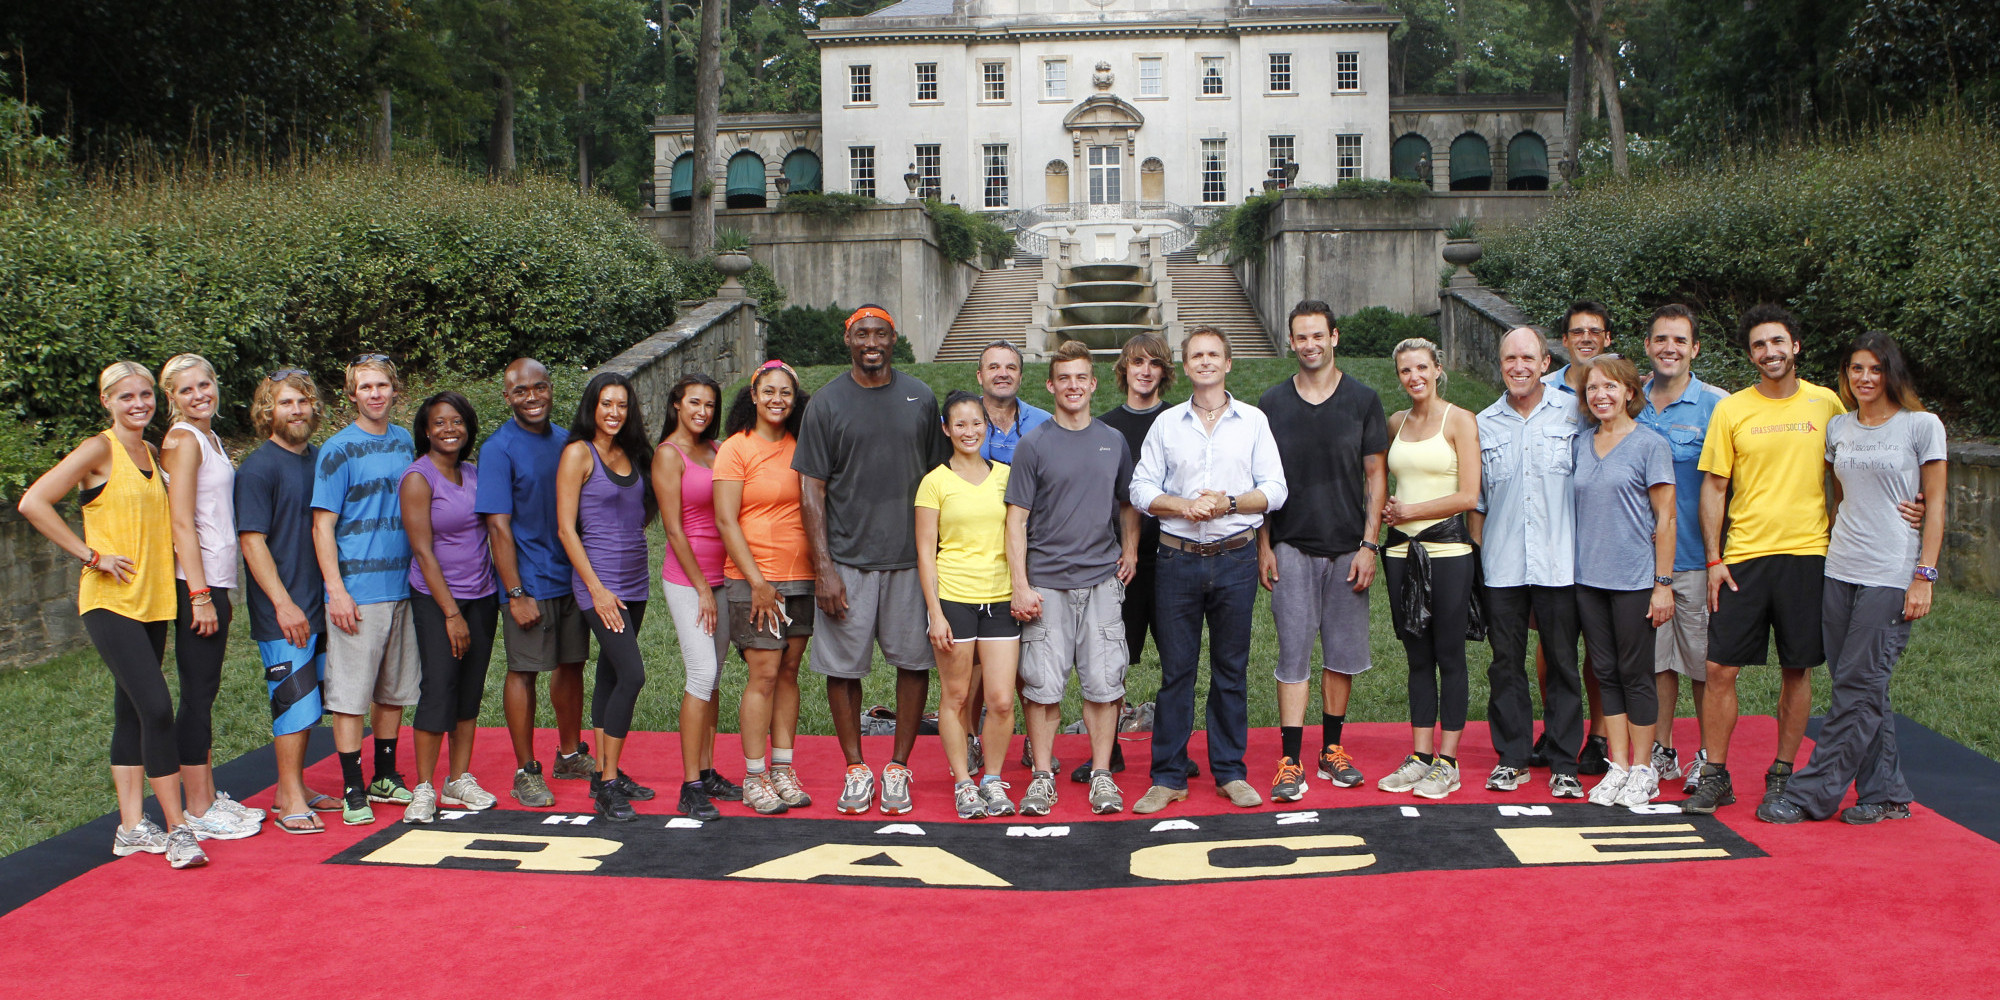 Everything you wanted to know about how they make the amazing race